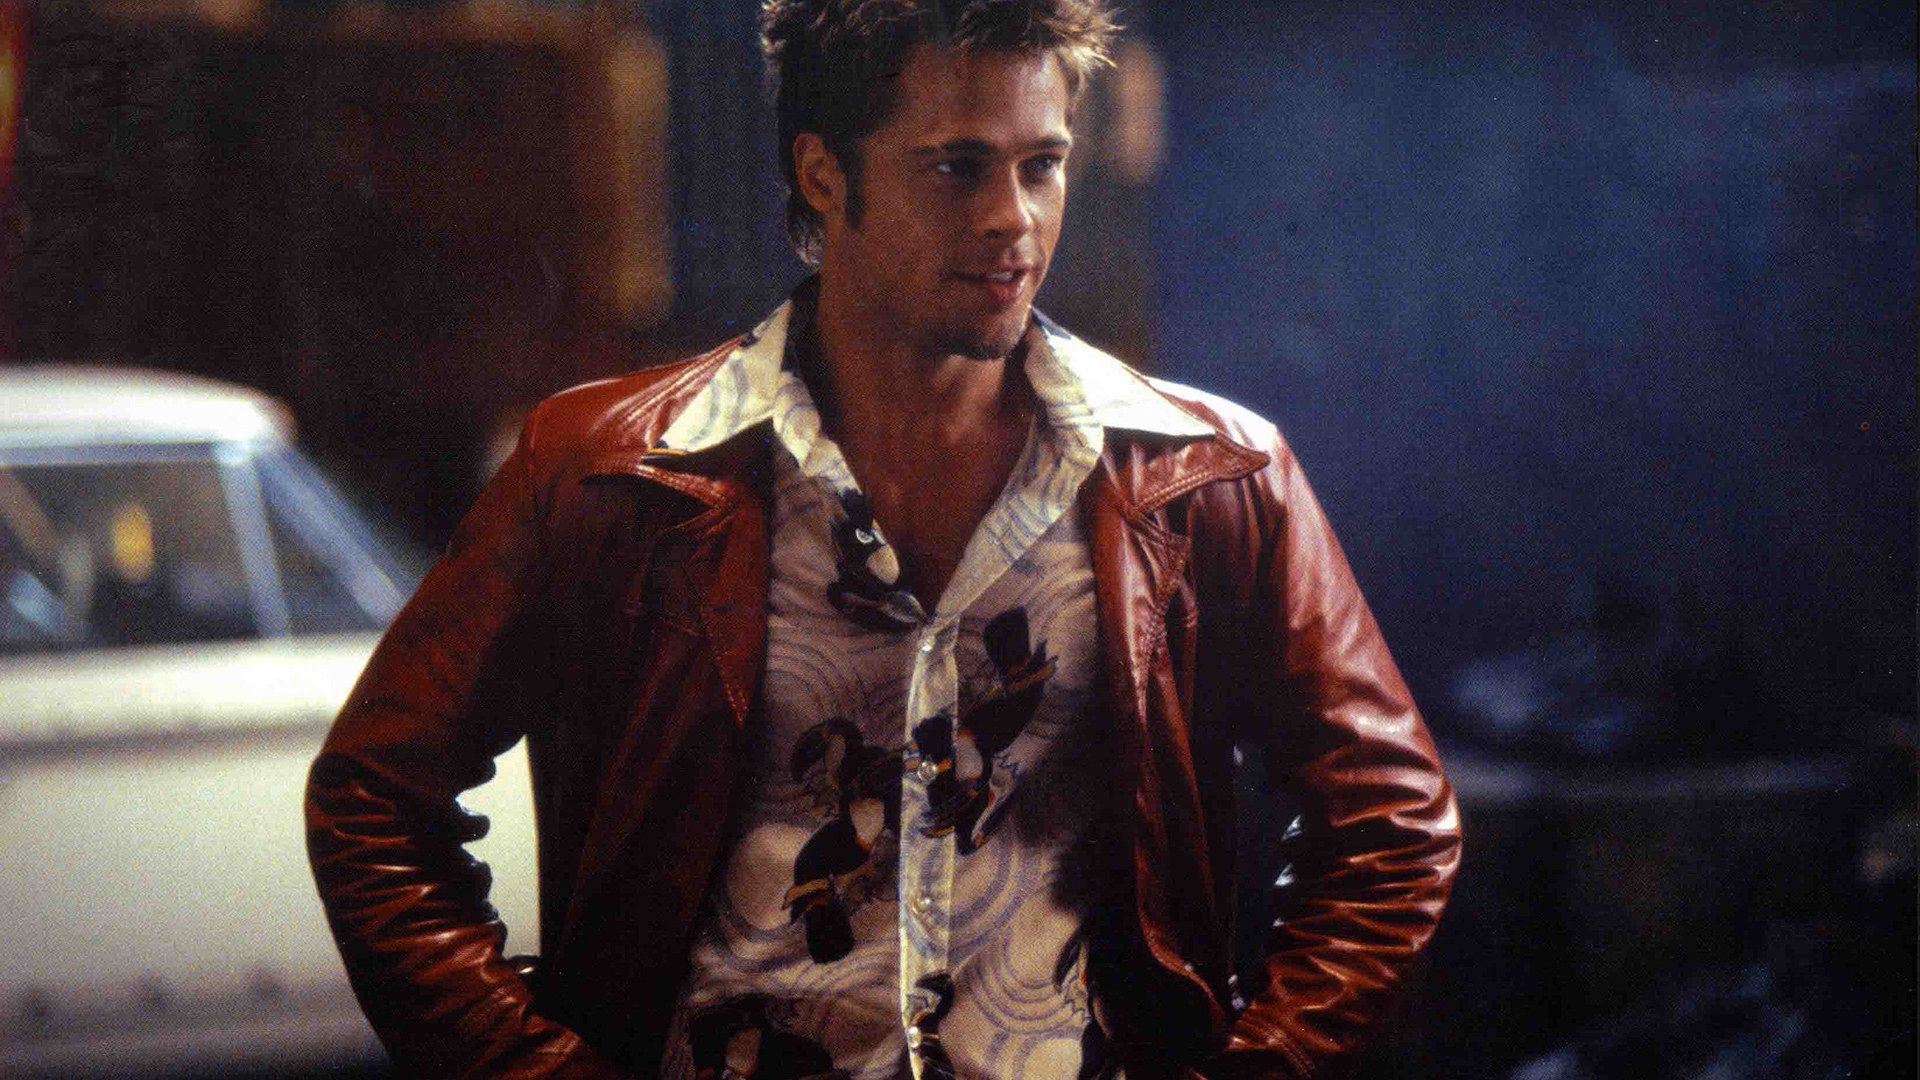 Twenty Years After Its Release, What Did 'Fight Club' Achieve Where 'Joker' Failed?